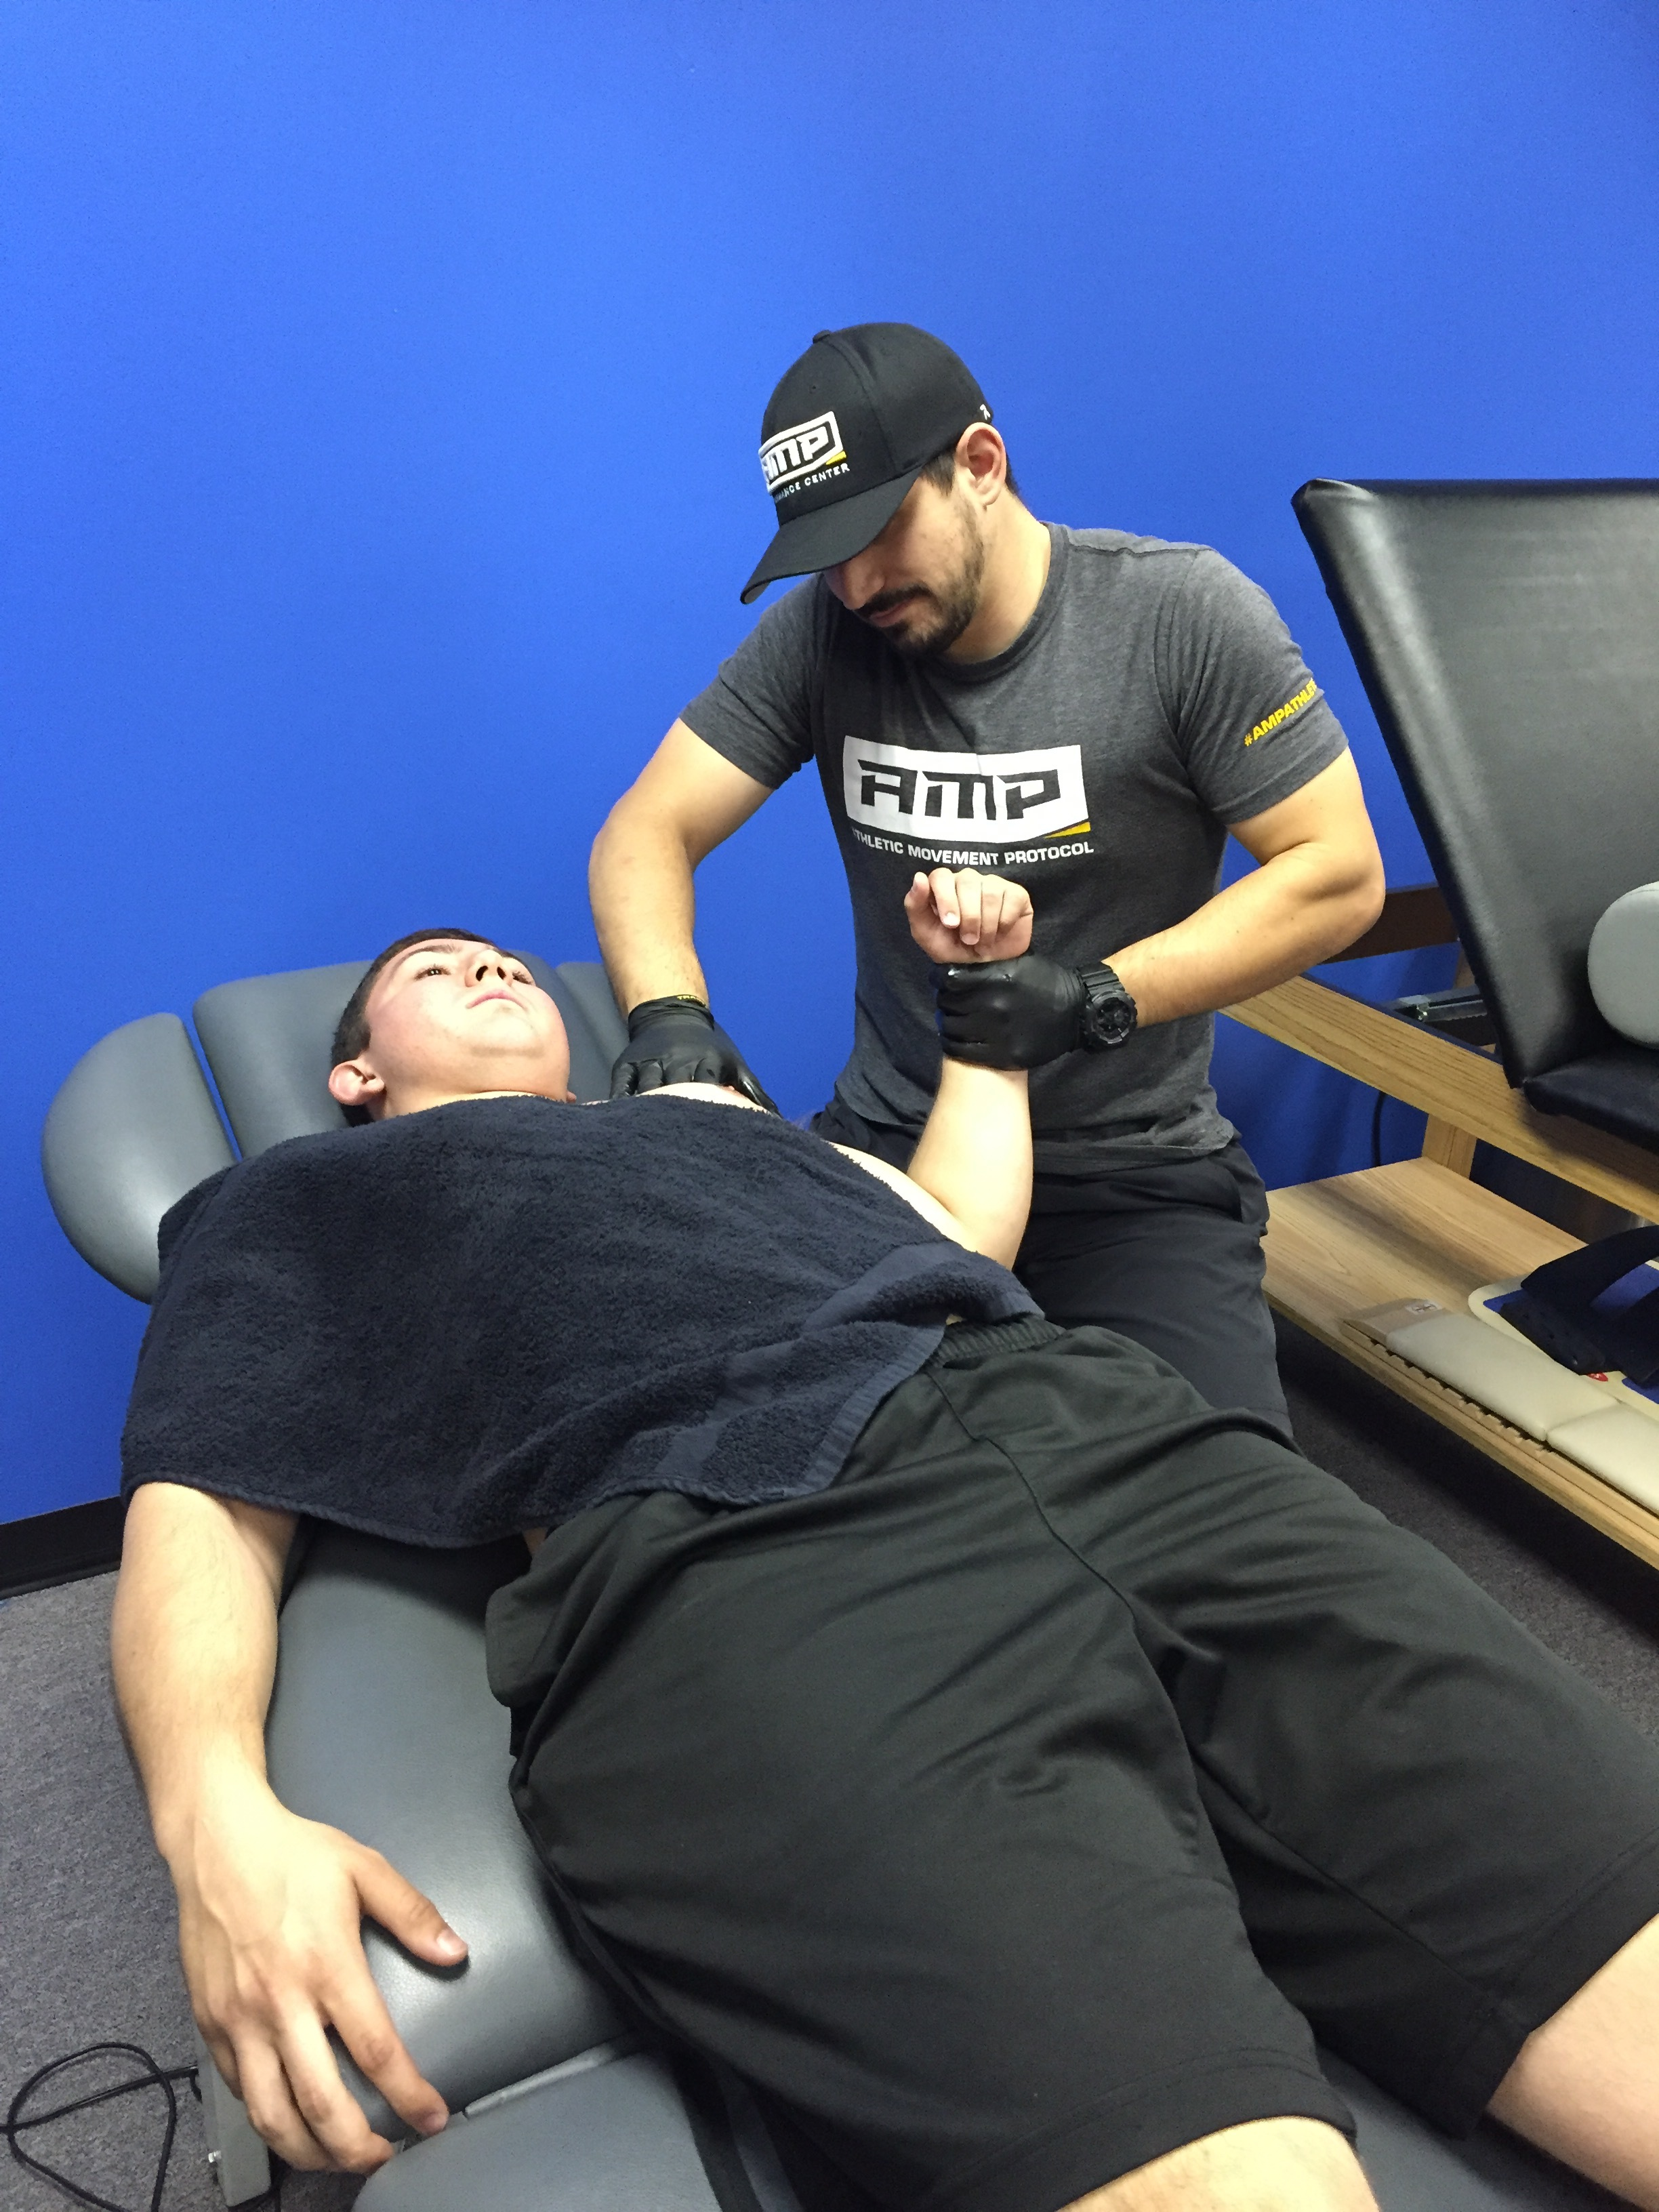 AMP Athlete Sal Pipia receives Manual Therapy on his shoulder to restore lost range of motion after surgical repair.